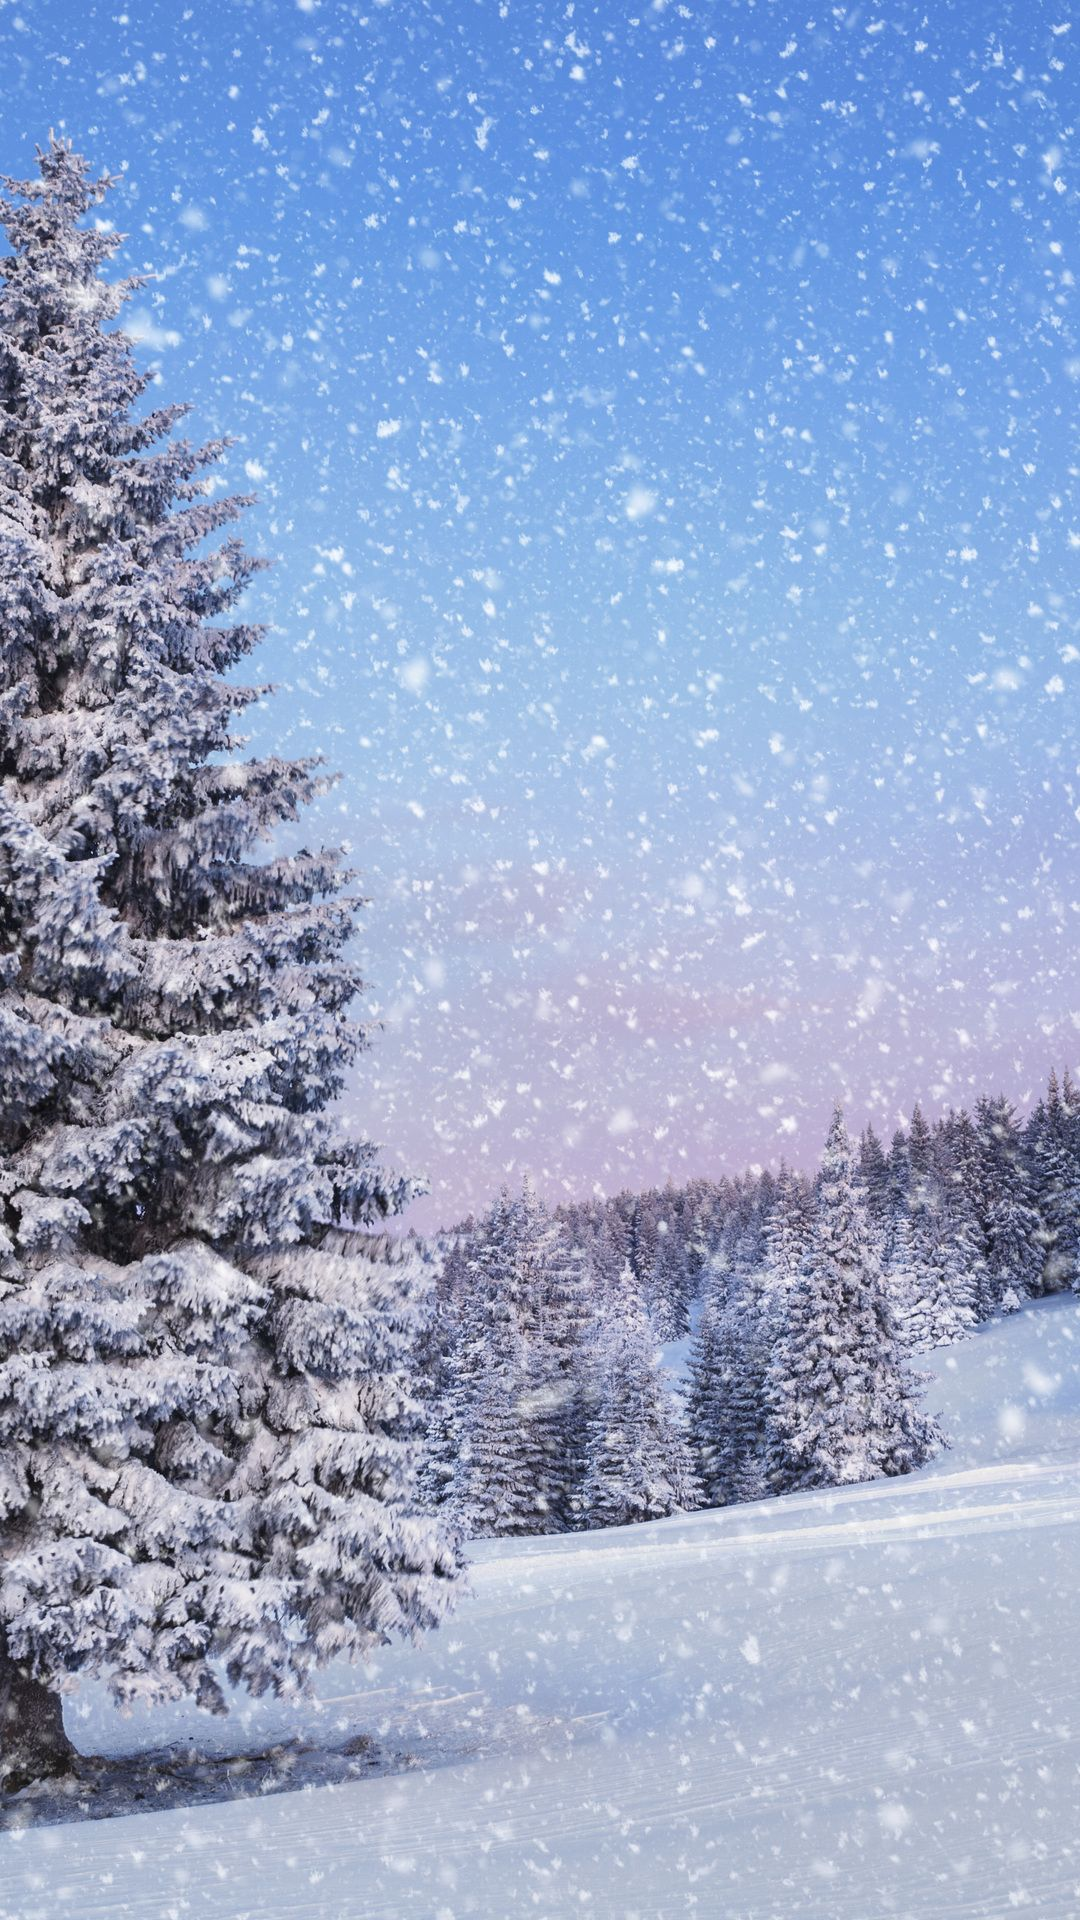 Nature Landscape Snow Winter Time Of The Year Tree Photo Winter Wallpaper Winter Background Winter Scenery